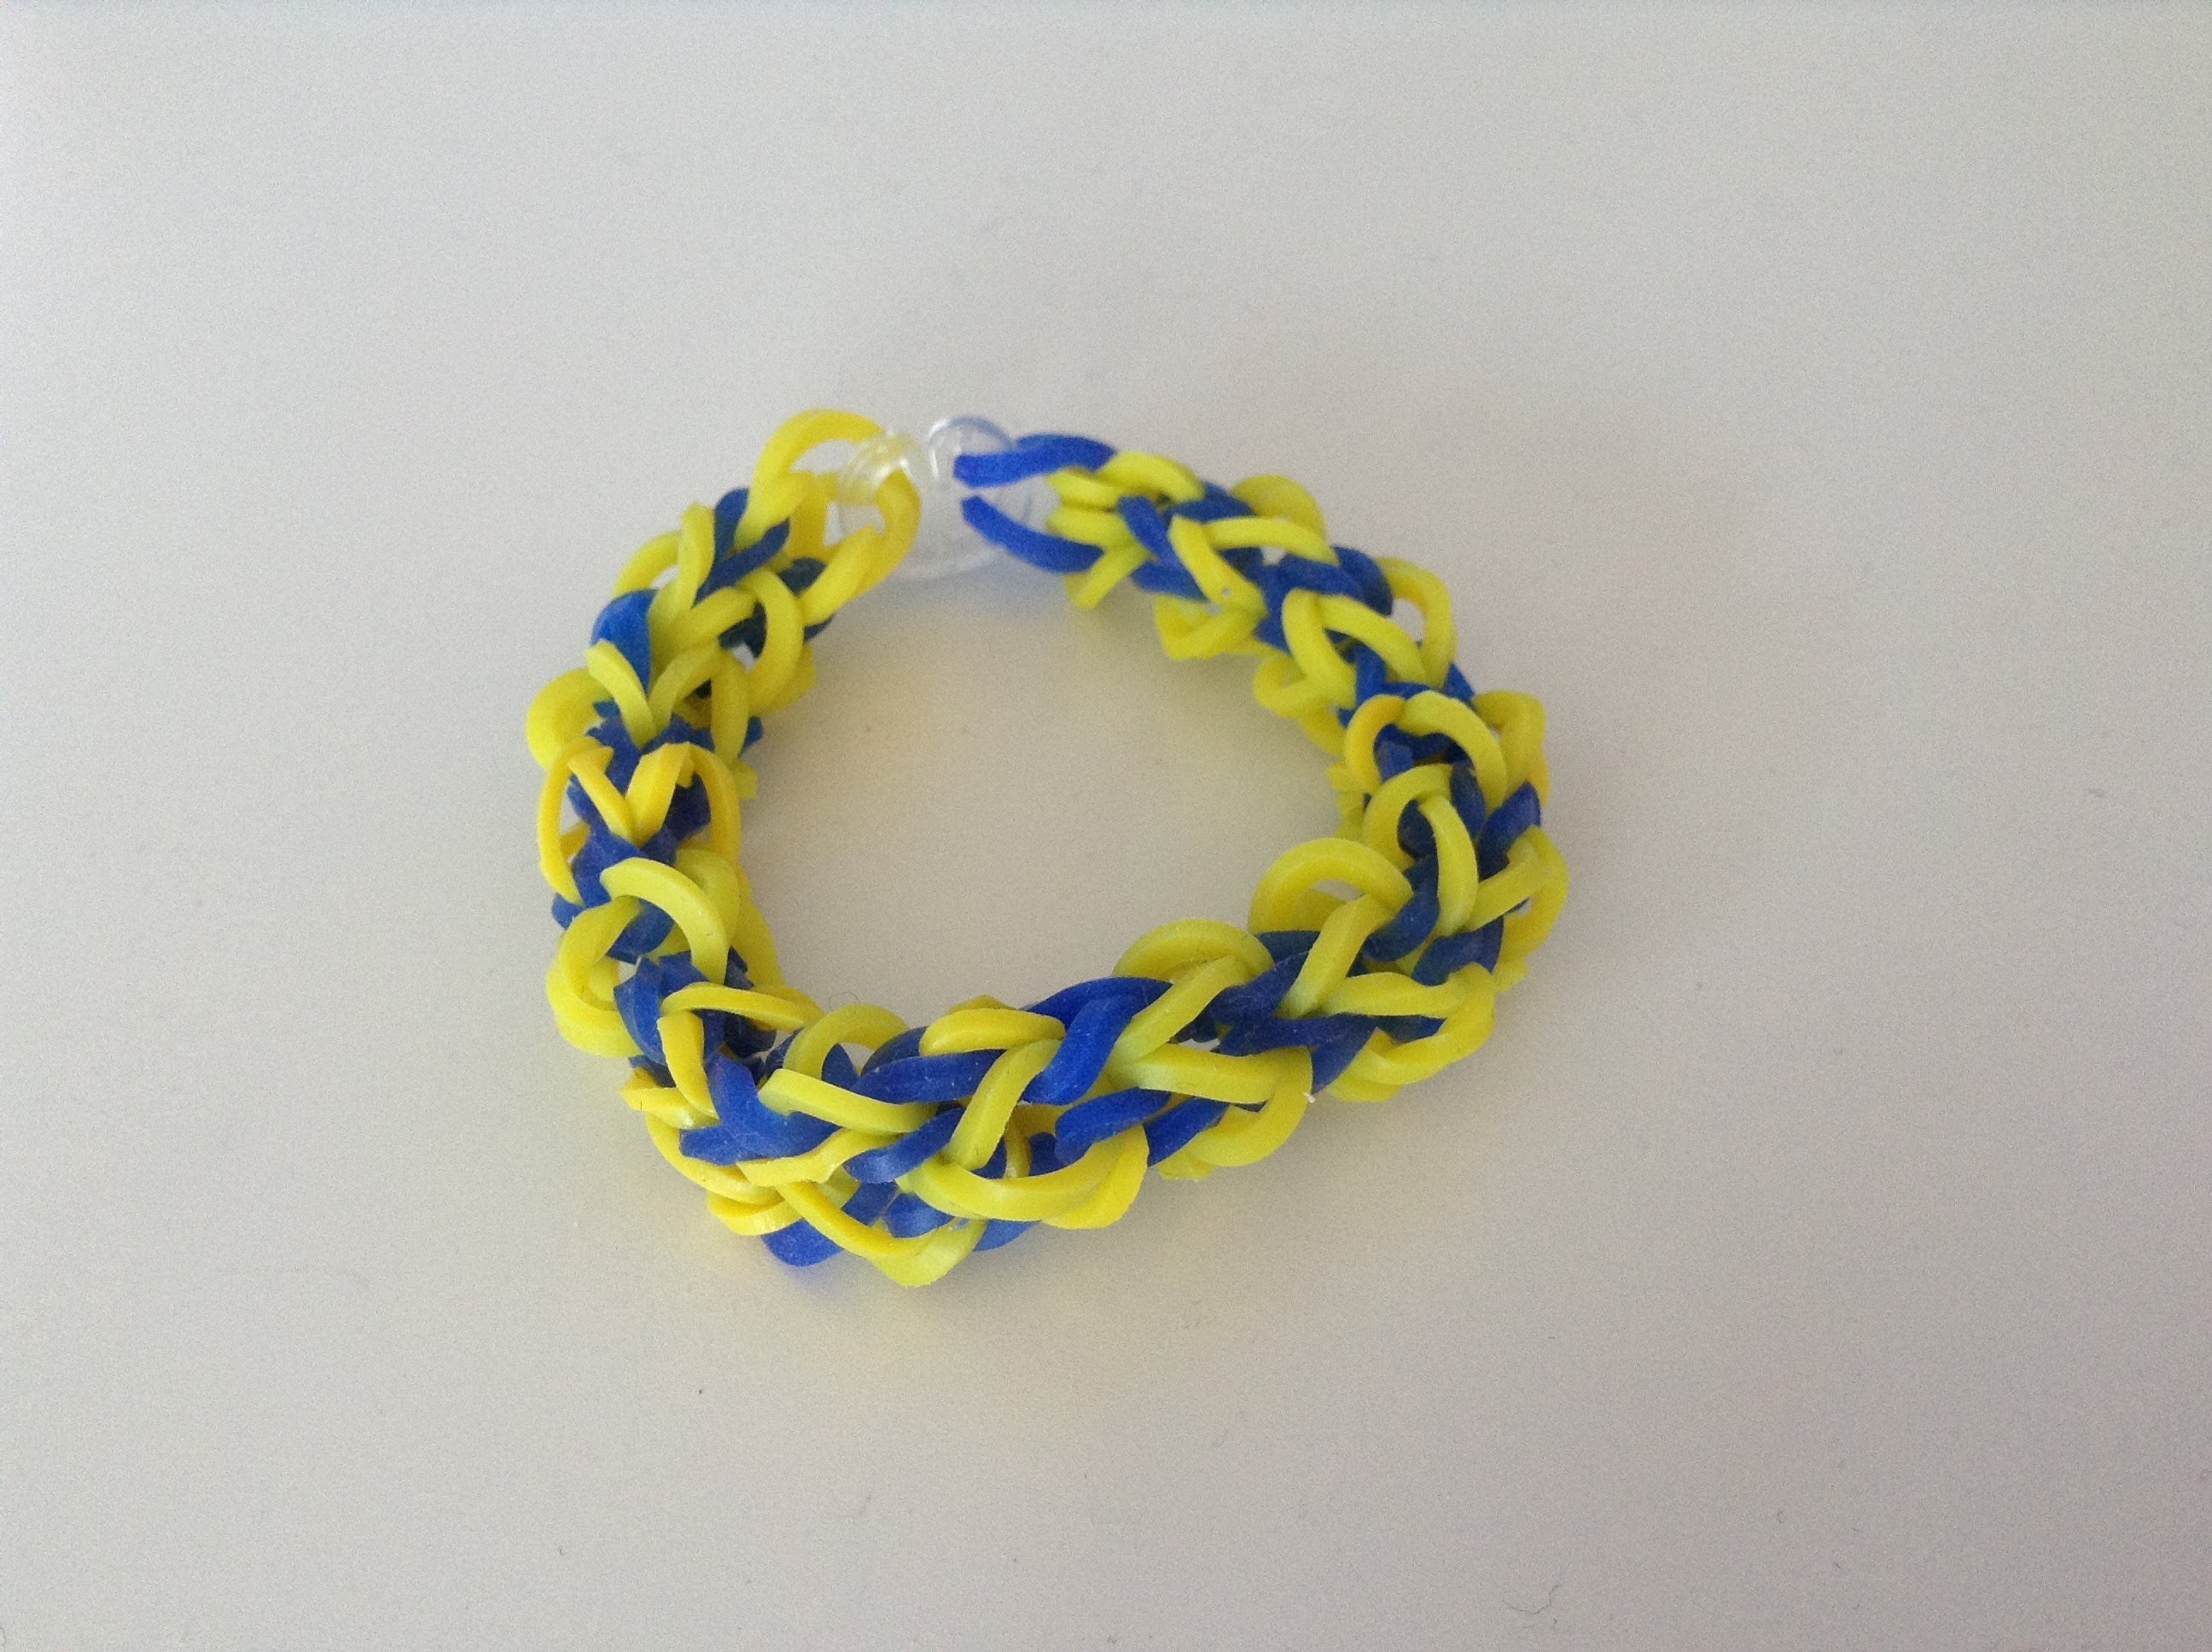 Rainbow loom Nederlands, twist square armband